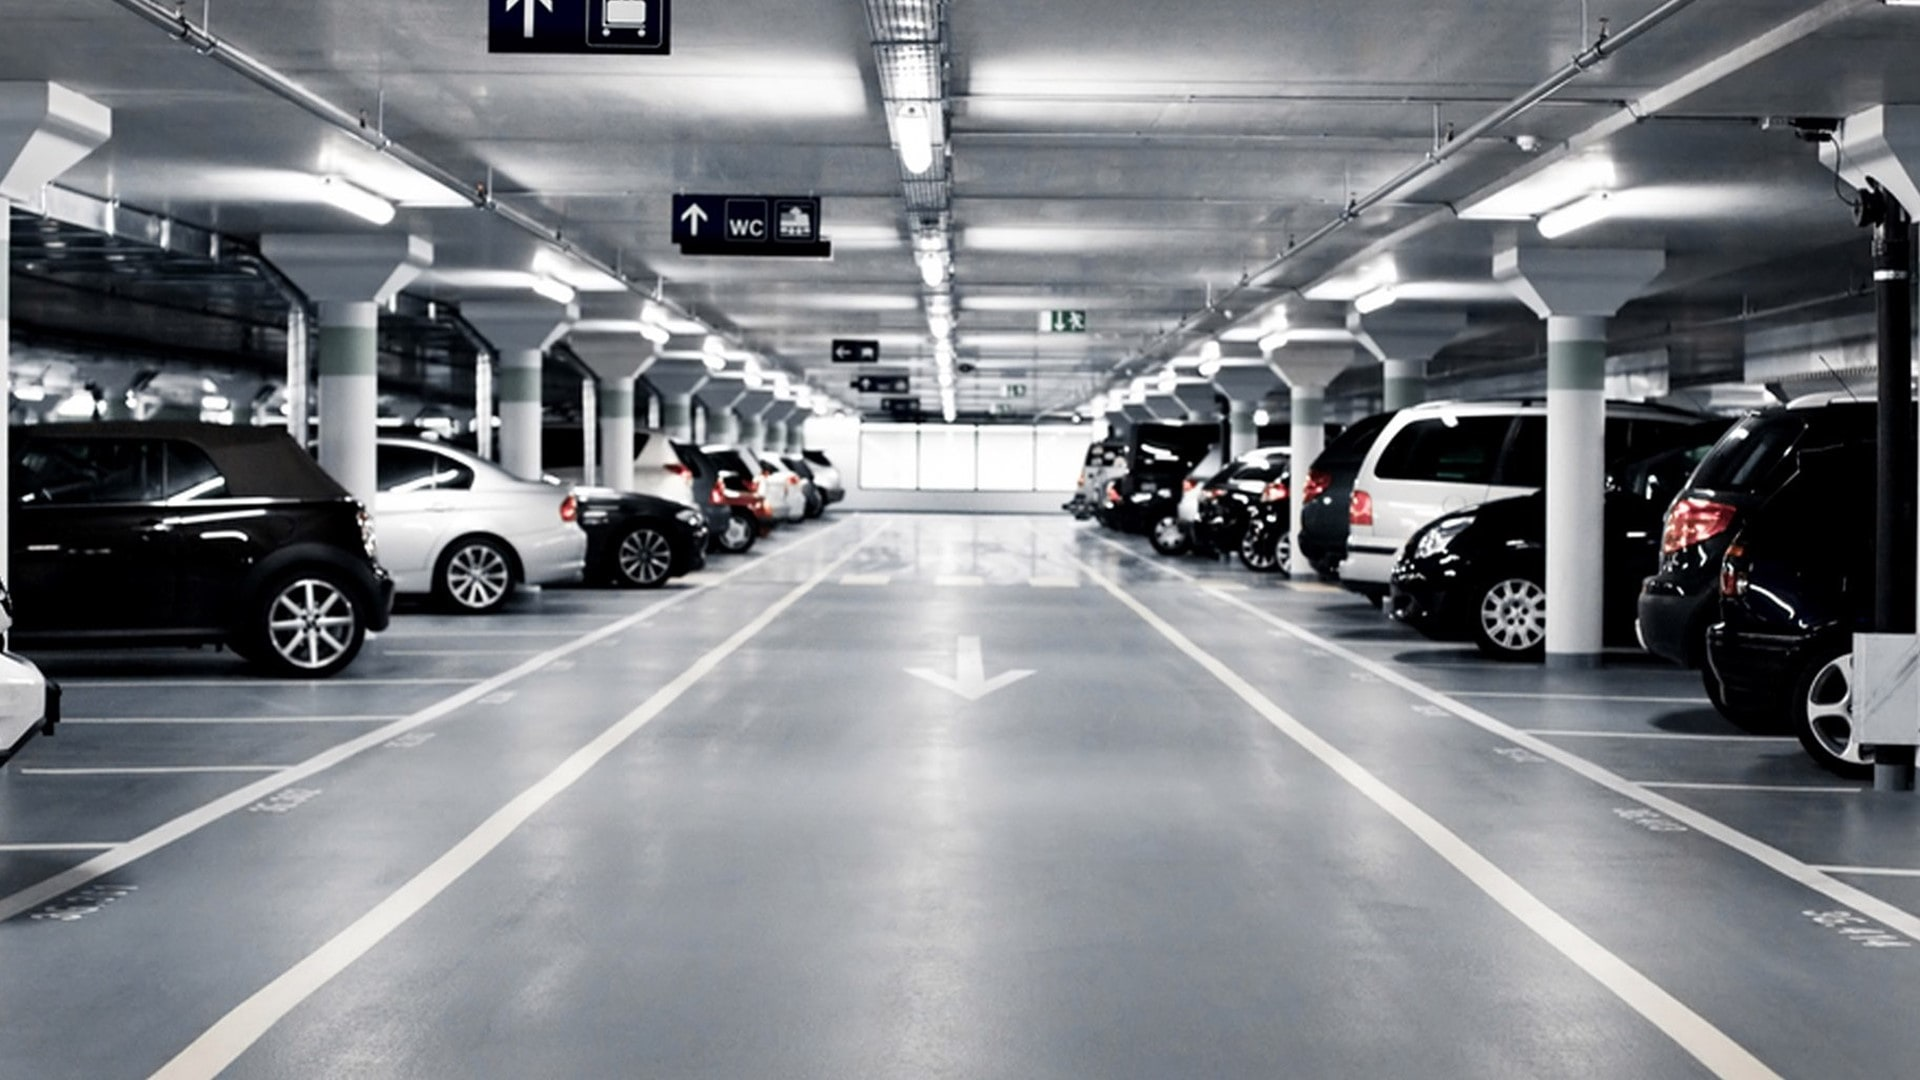 a dark parking lot with cars parked on the left and right side